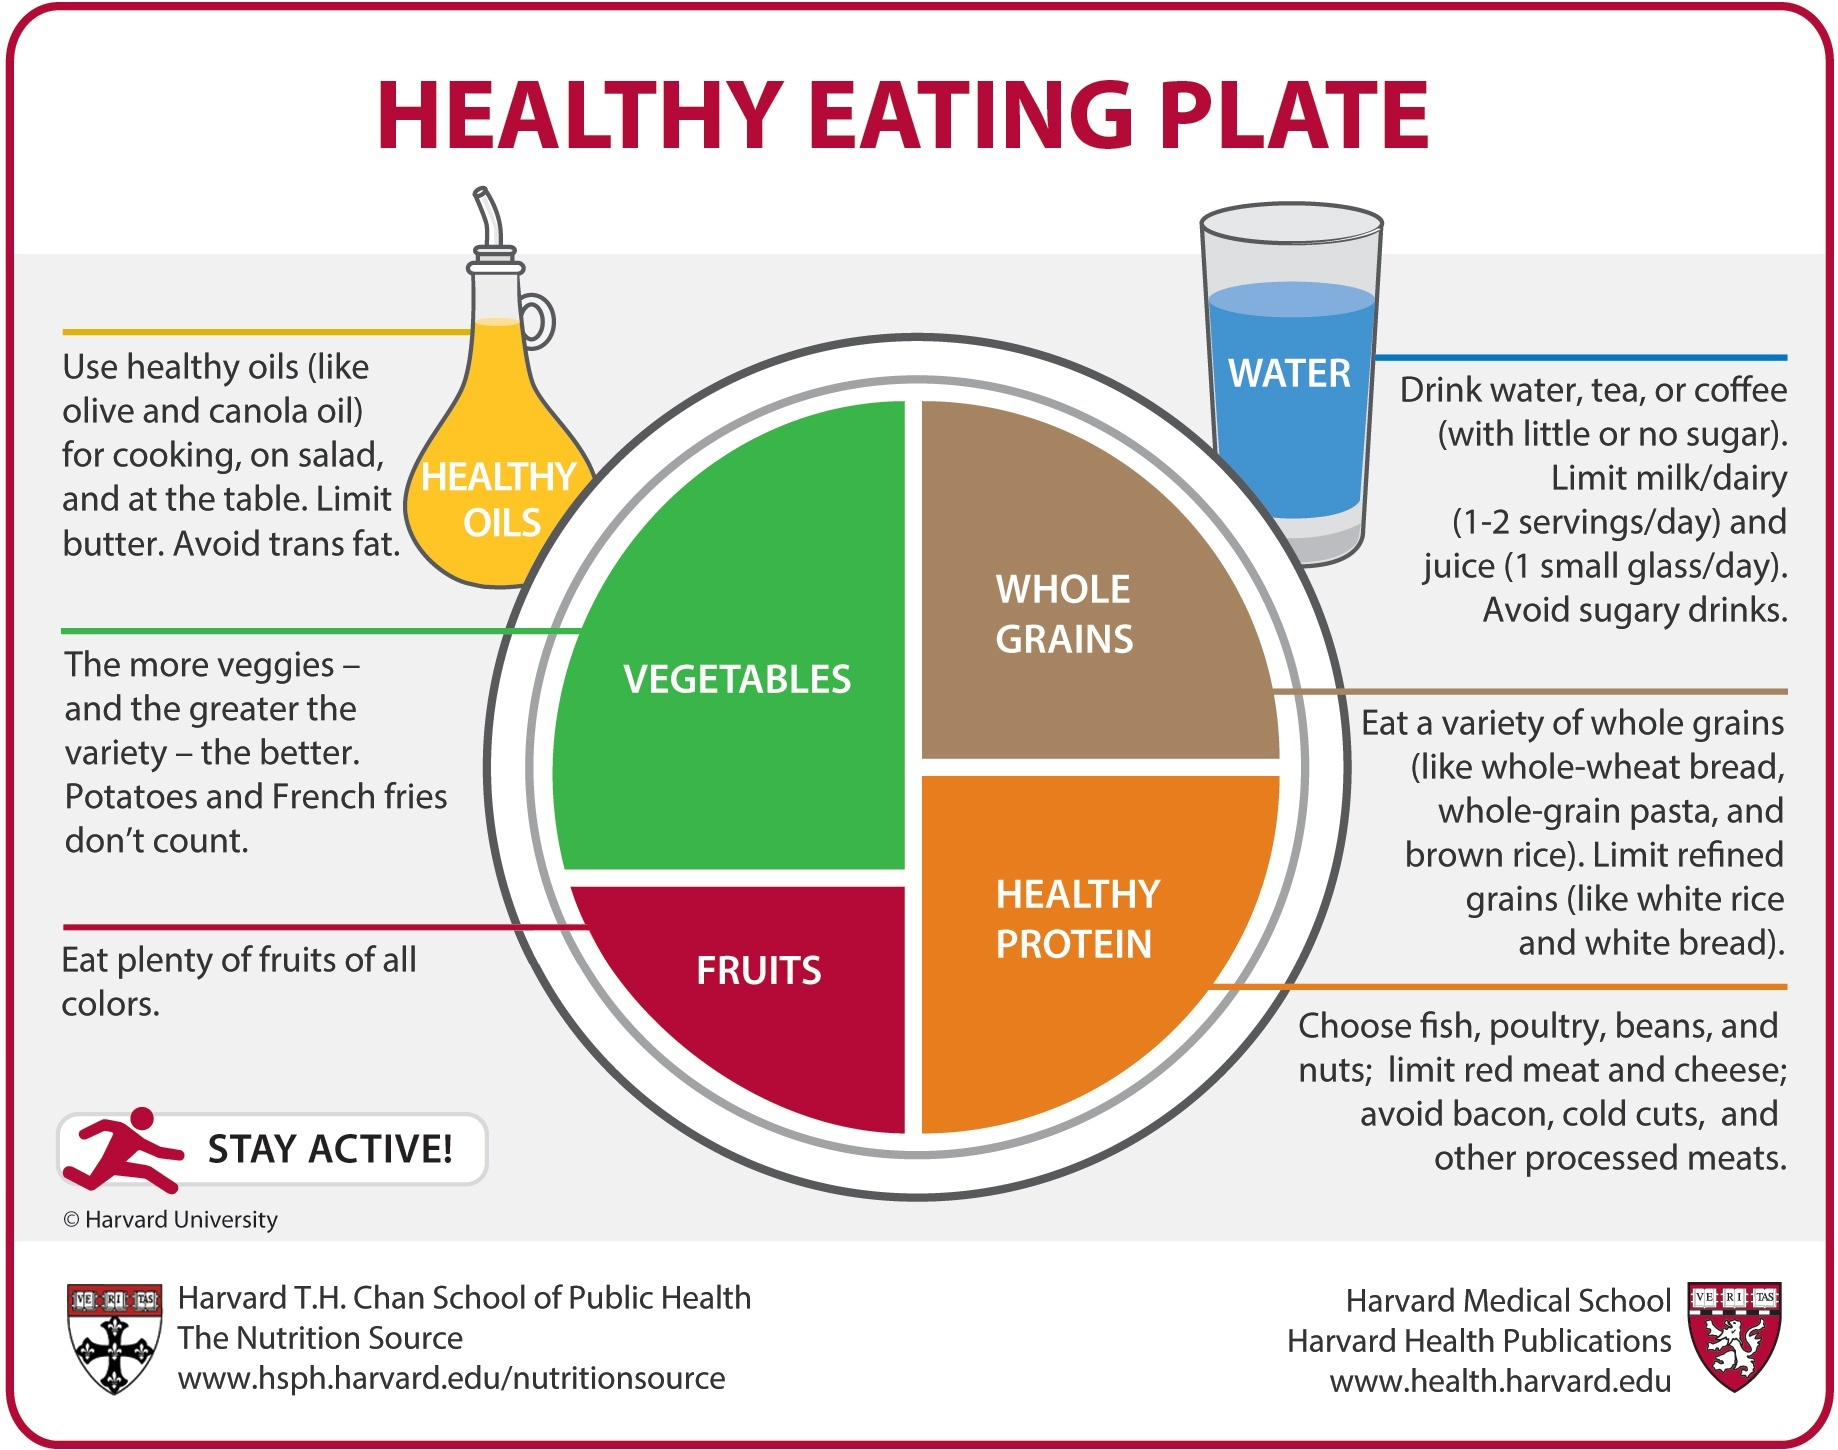 Daily diet for good health - Healthy Eating Plate